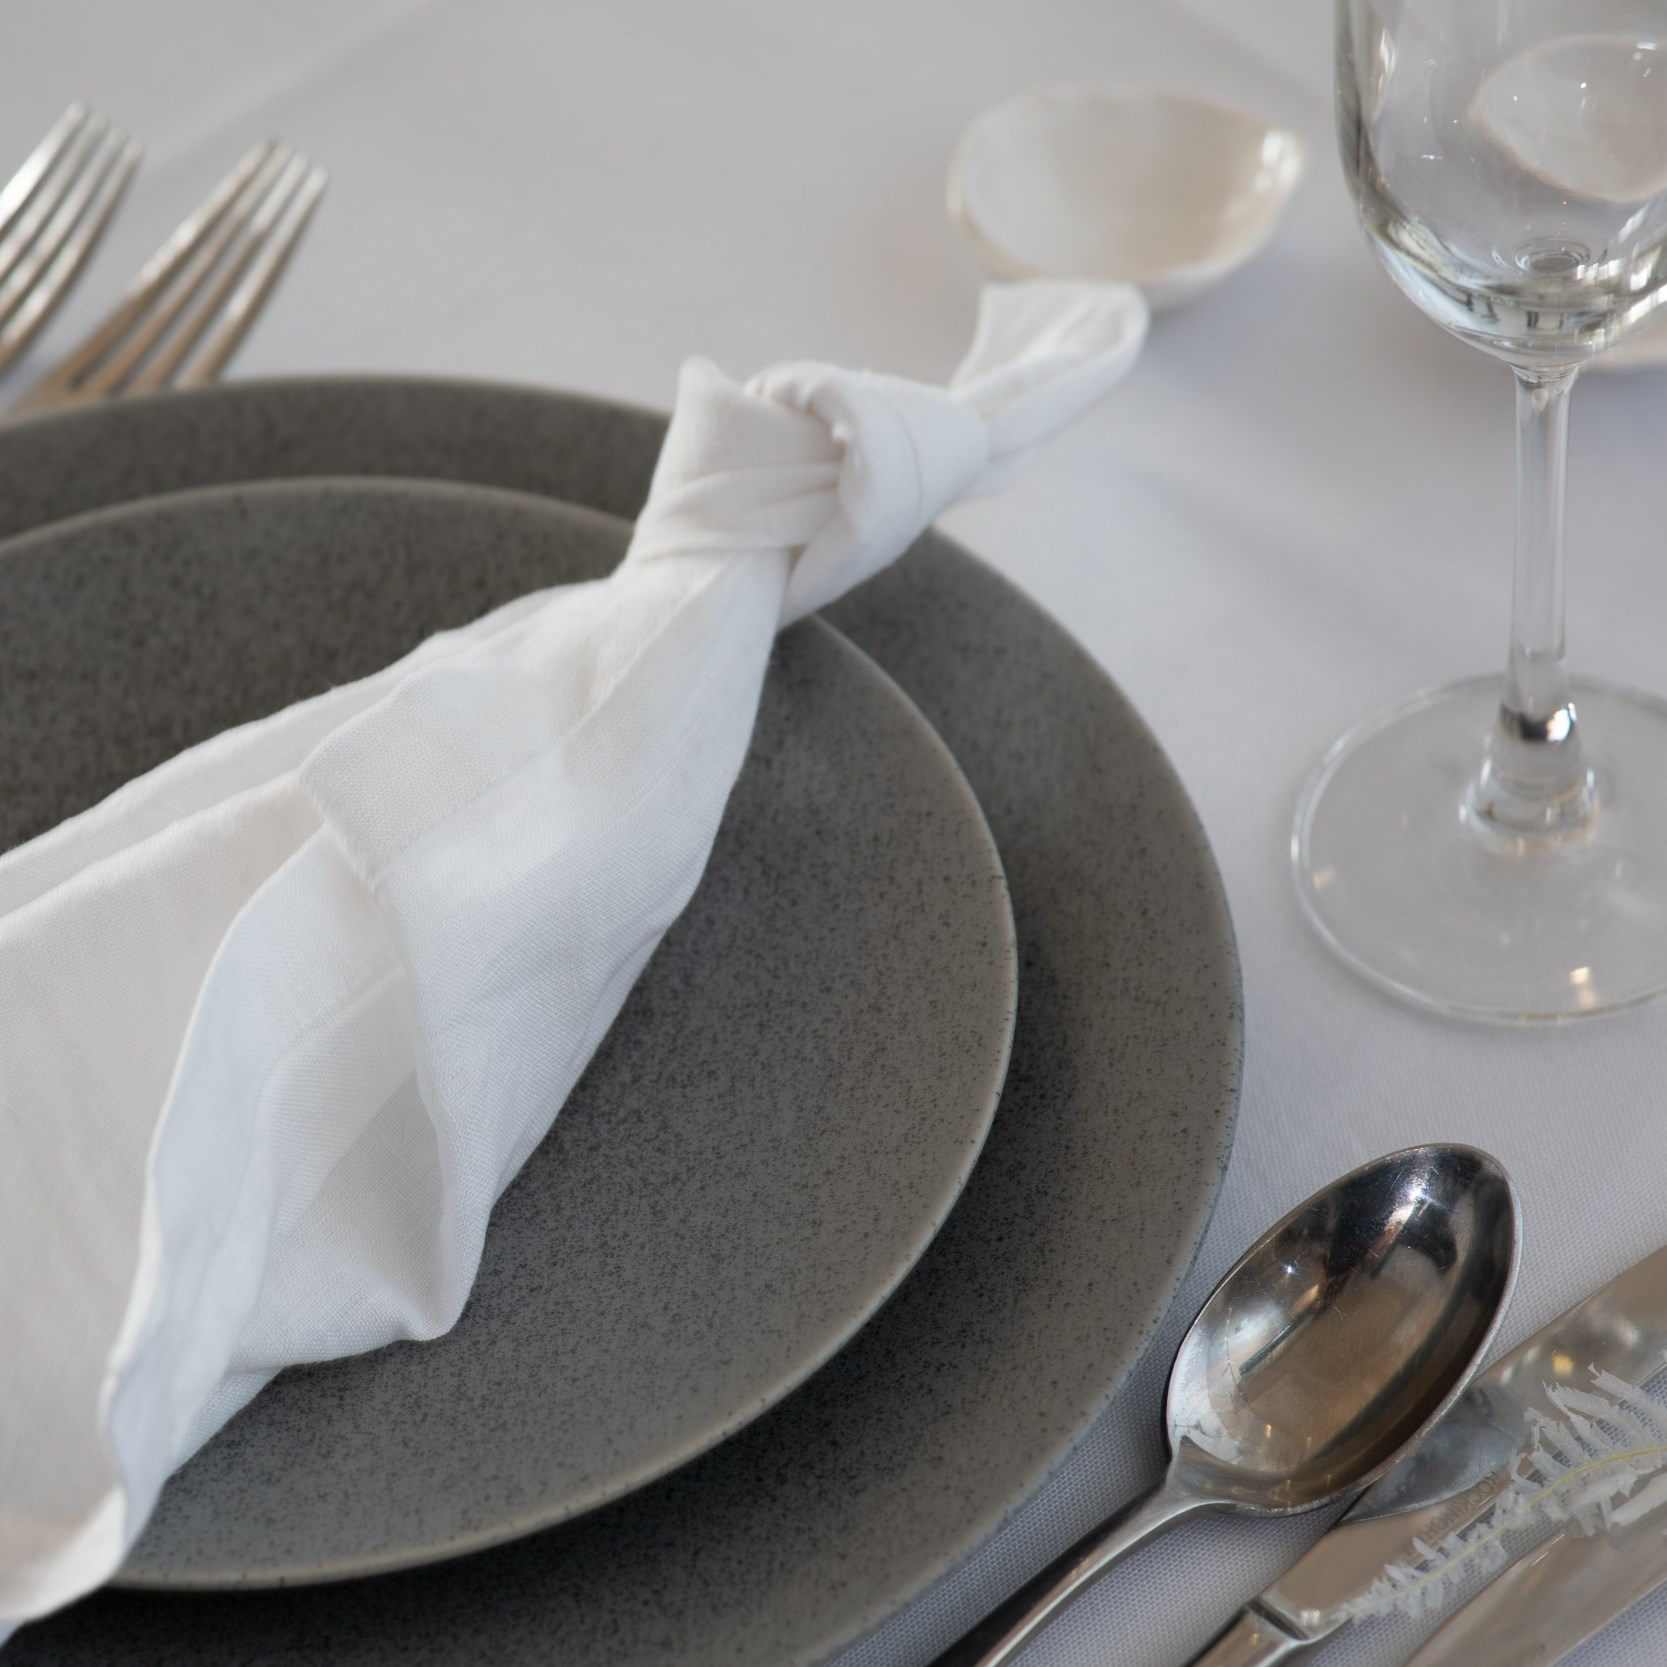 Hire Cutlery, Crockery and Glassware